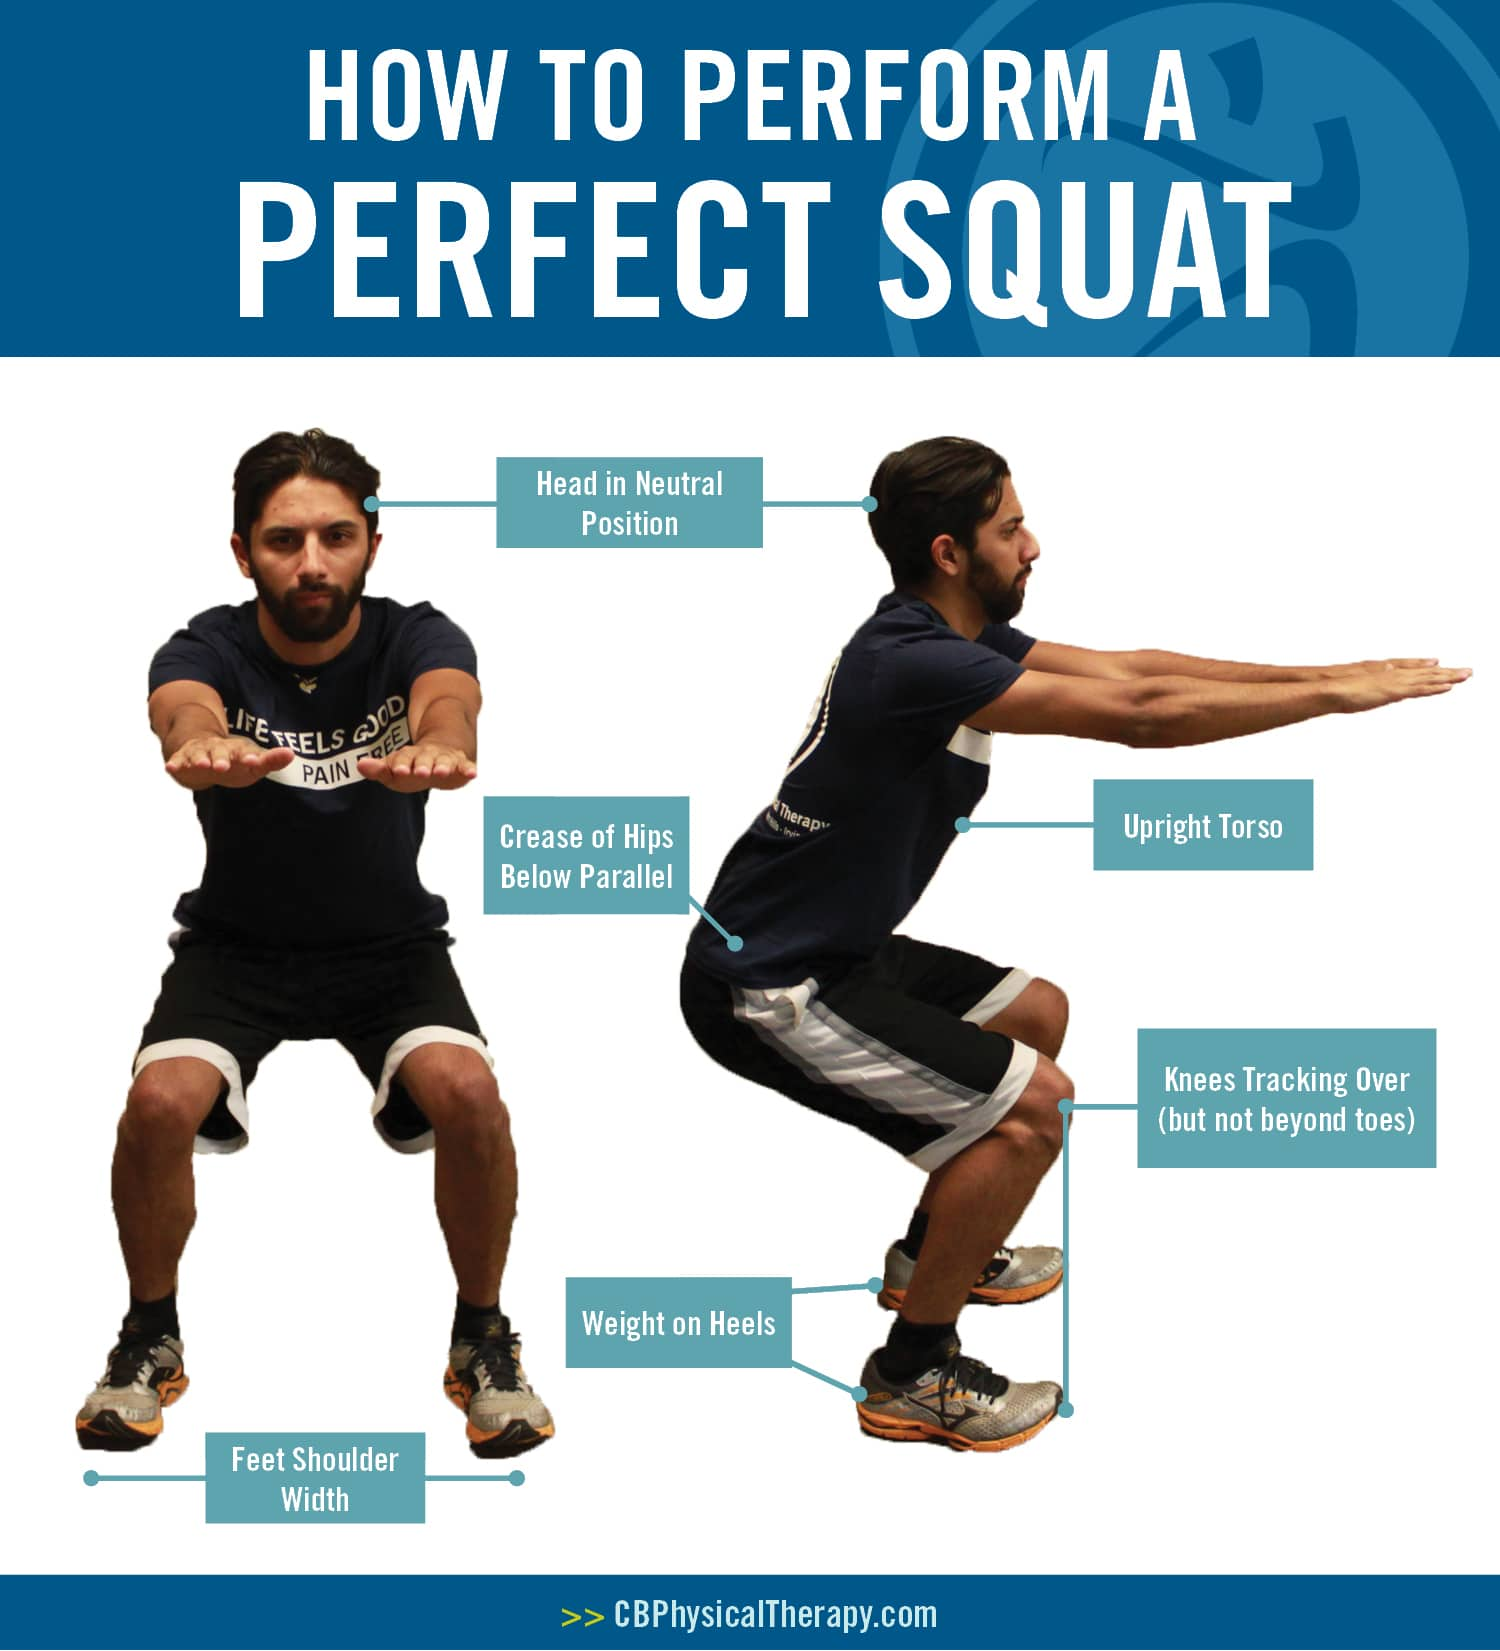 The Perfect Squat Diagram